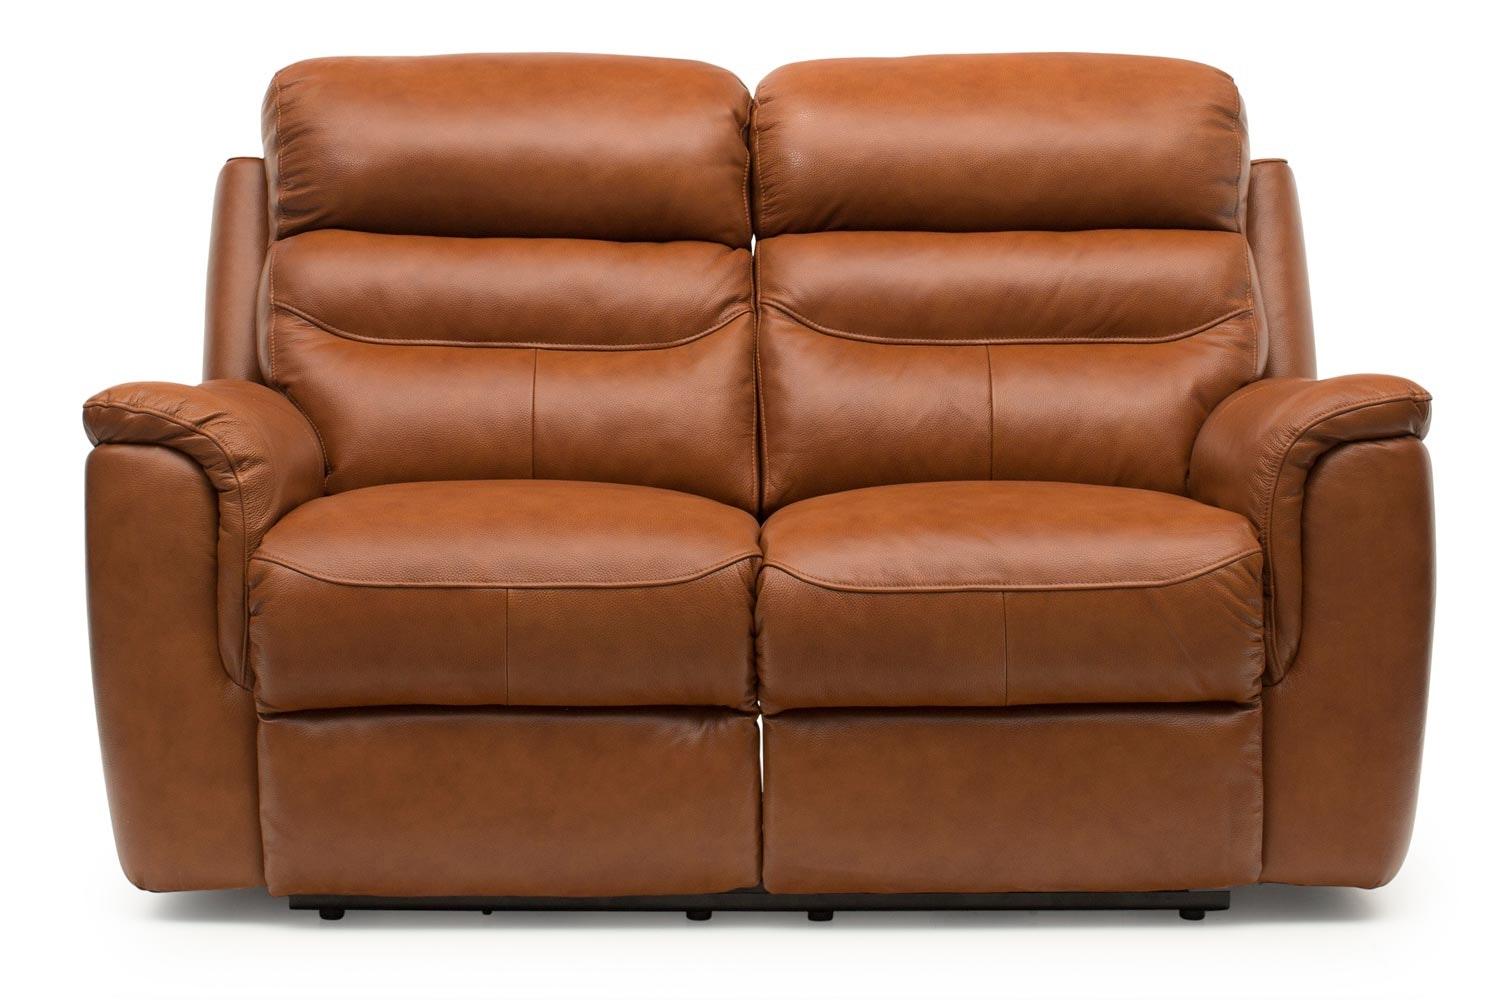 Bayle 2-Seater Leather Recliner Sofa